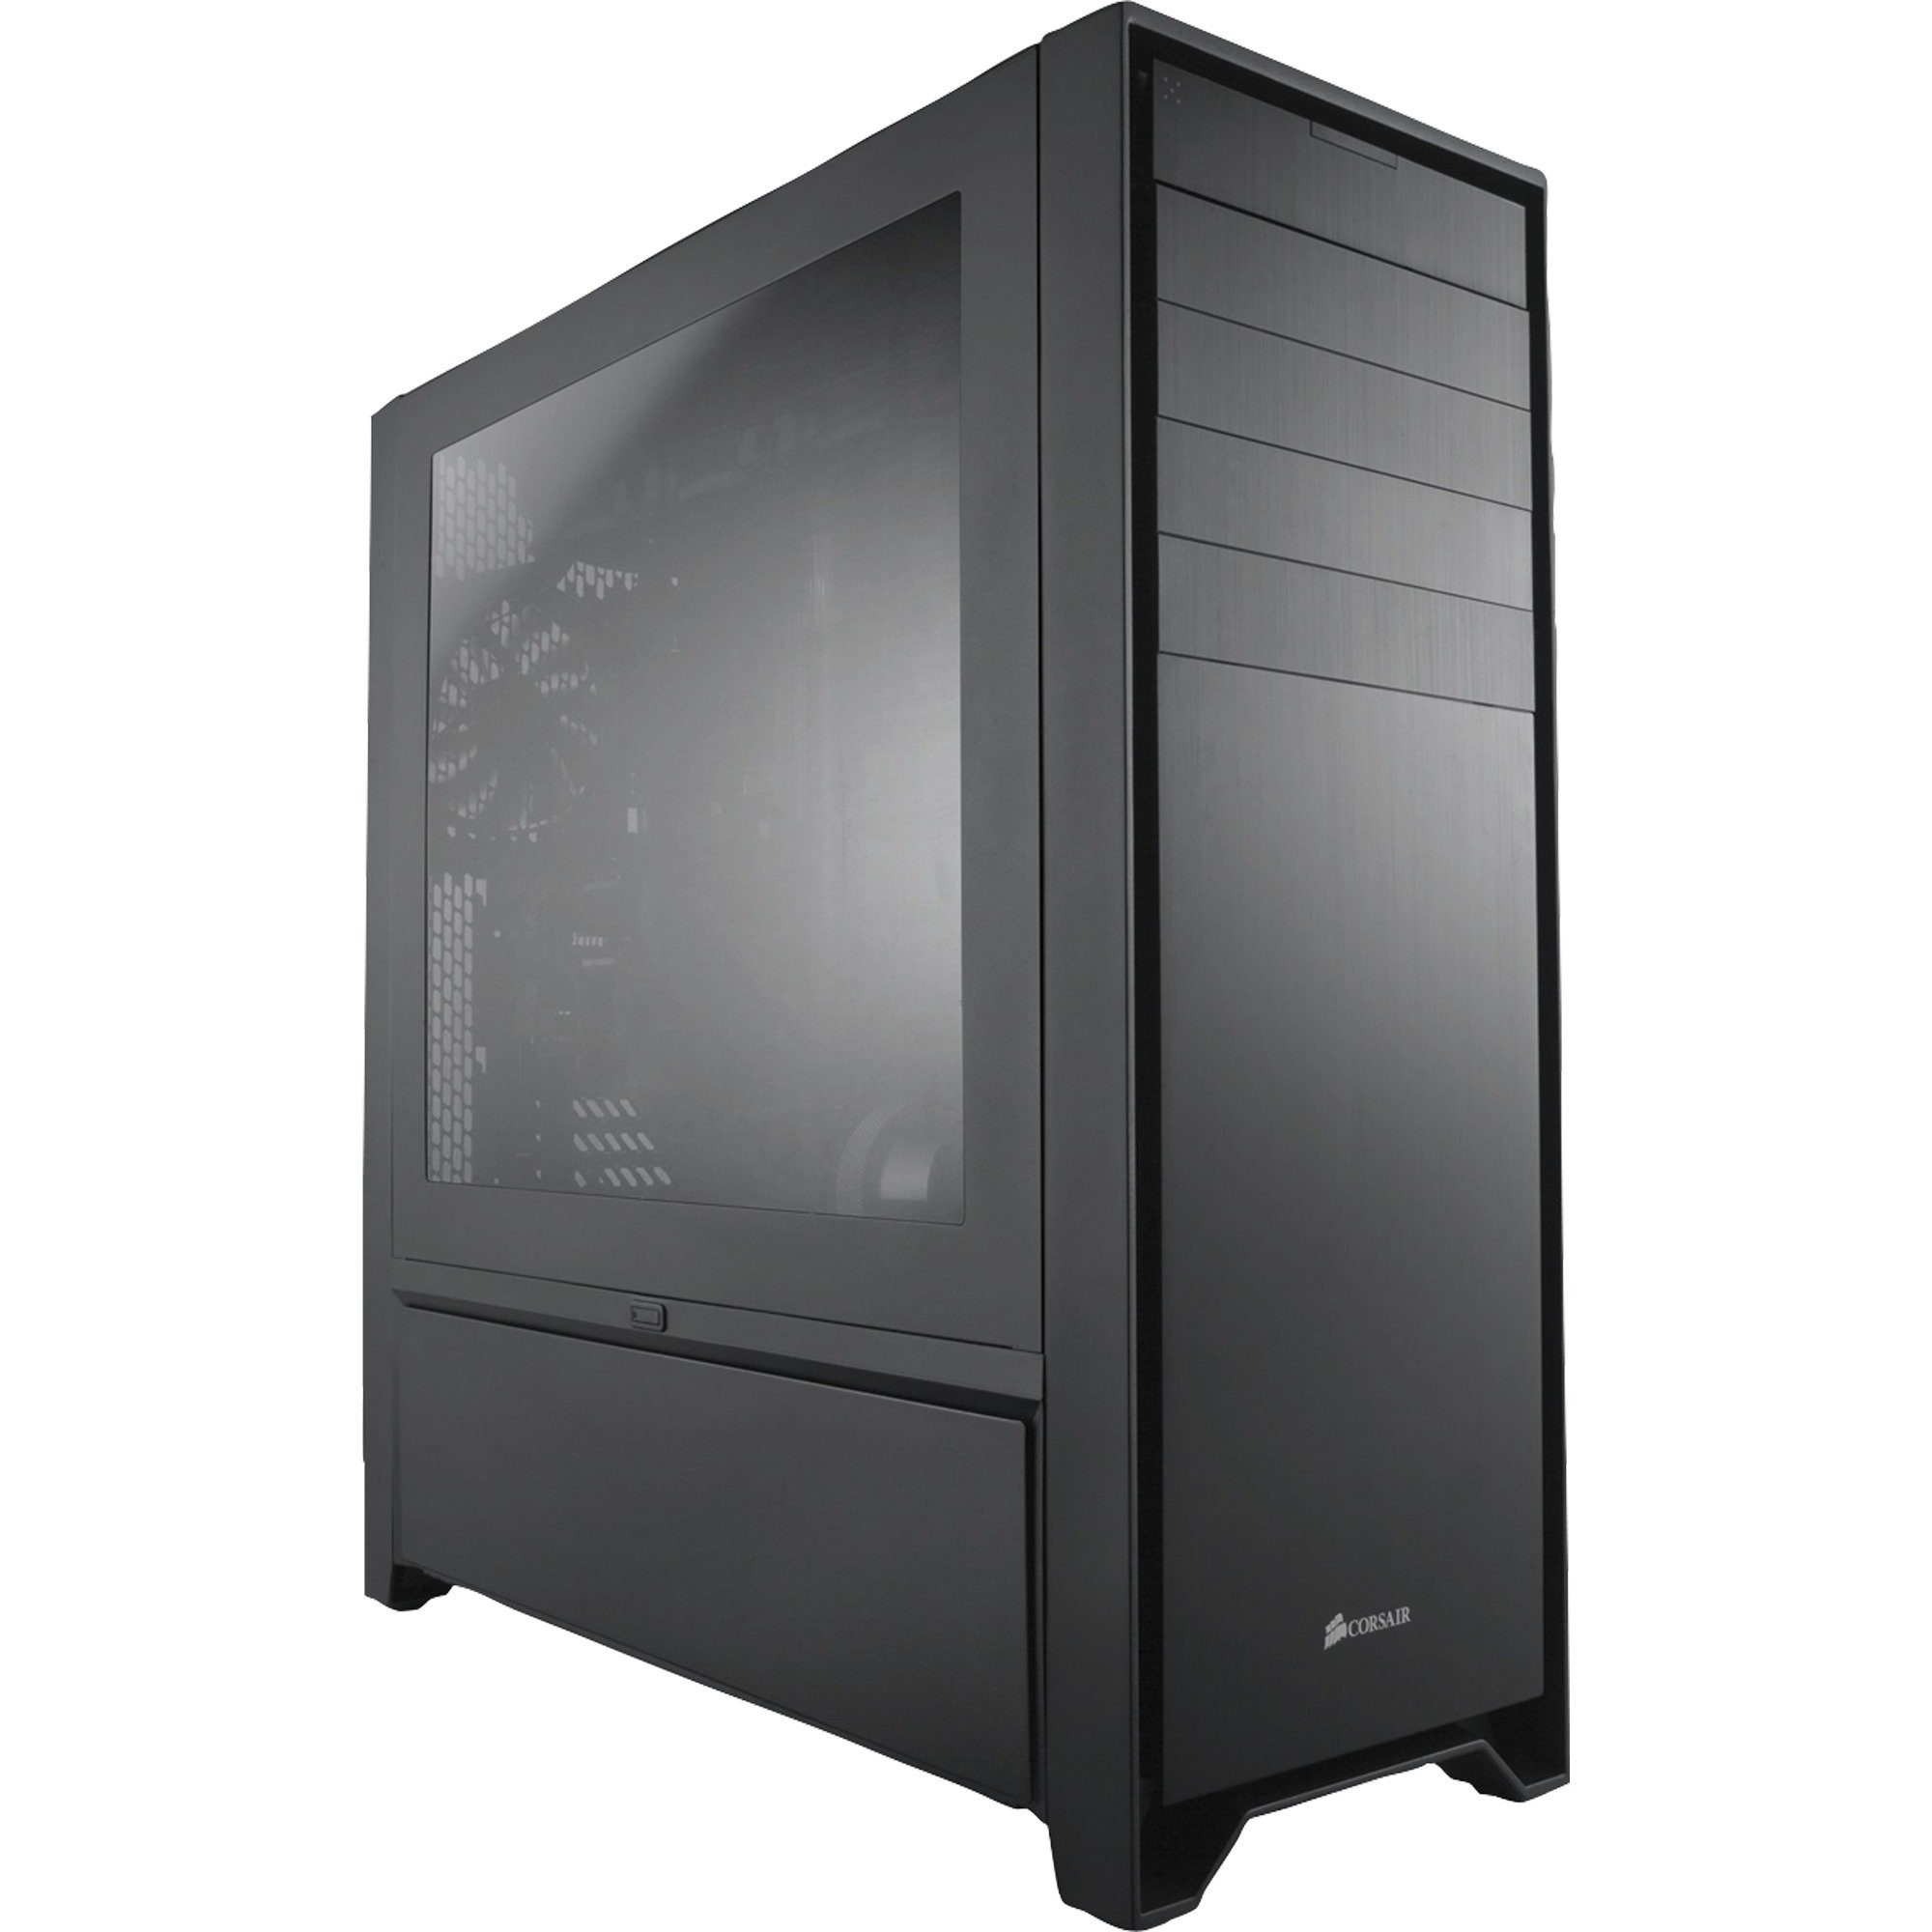 Corsair Big-Tower-Gehäuse »Obsidian 900D«